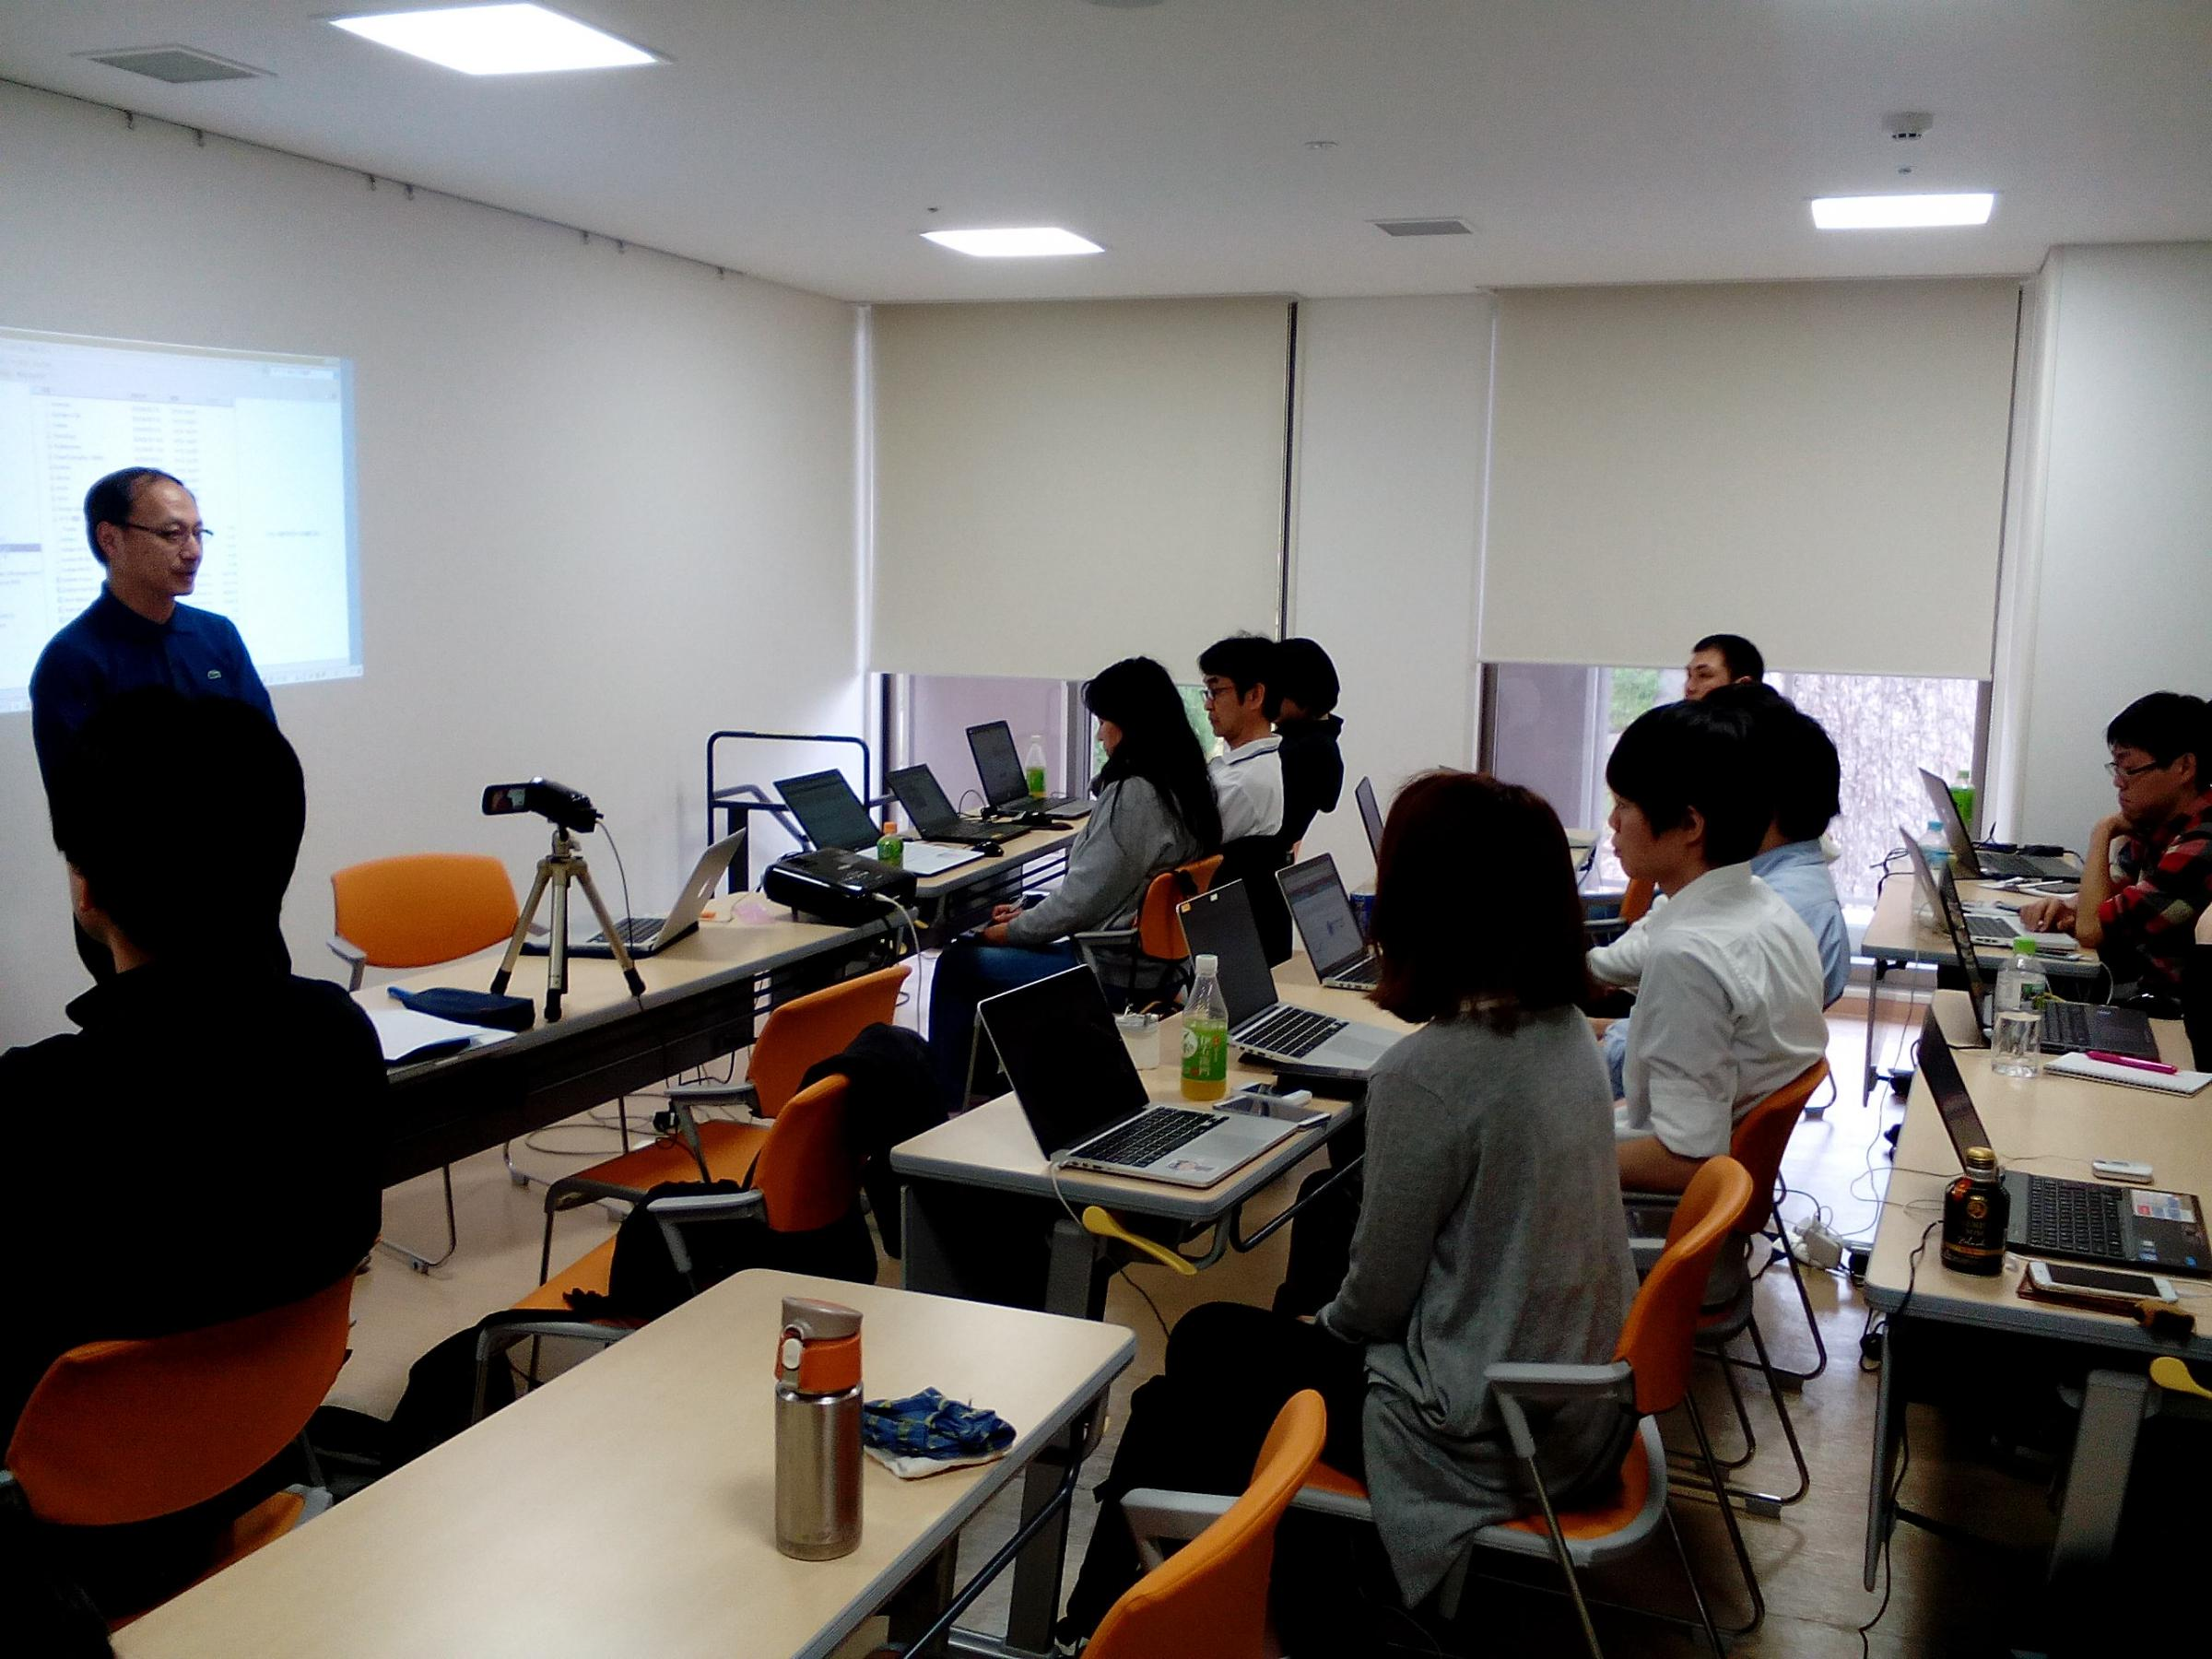 Drupal Global Training Day April 9, 2016 at Tokyo Edogawa